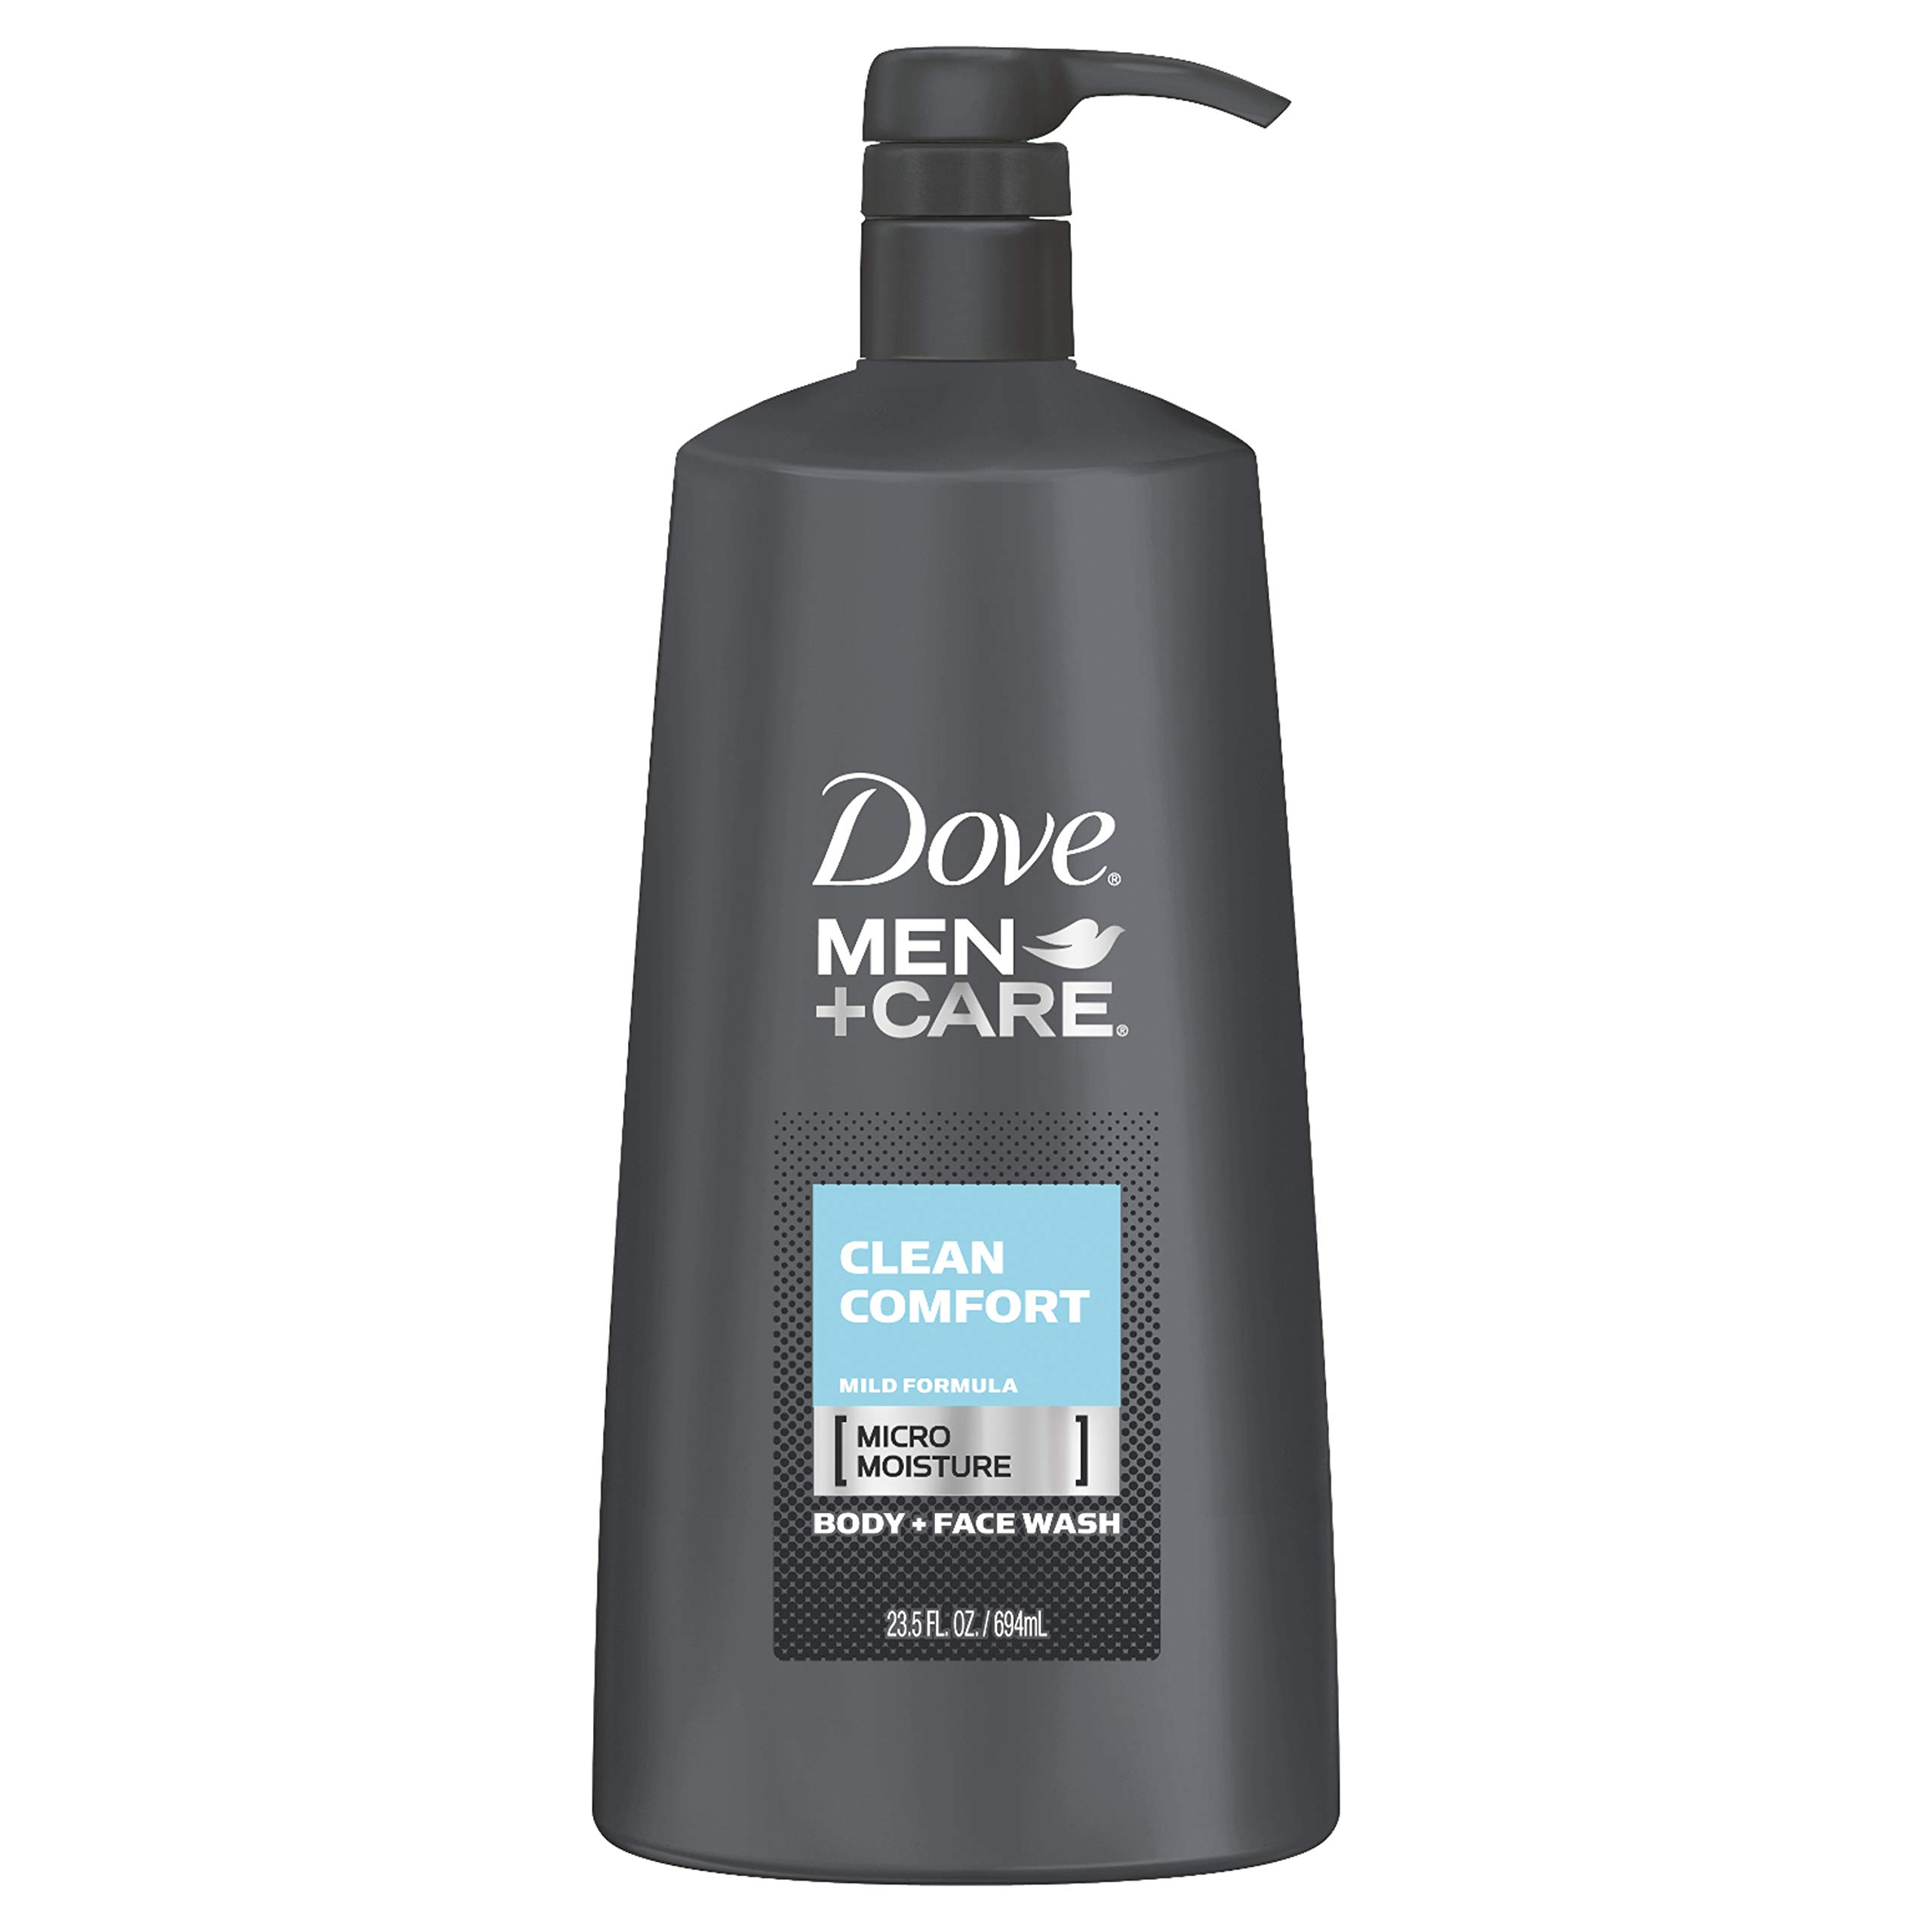 Dove Men+Care Body and Face Wash Pump For Healthier and Stronger Skin Clean Comfort More Moisturizing Than Typical Bodywash 23.5 oz